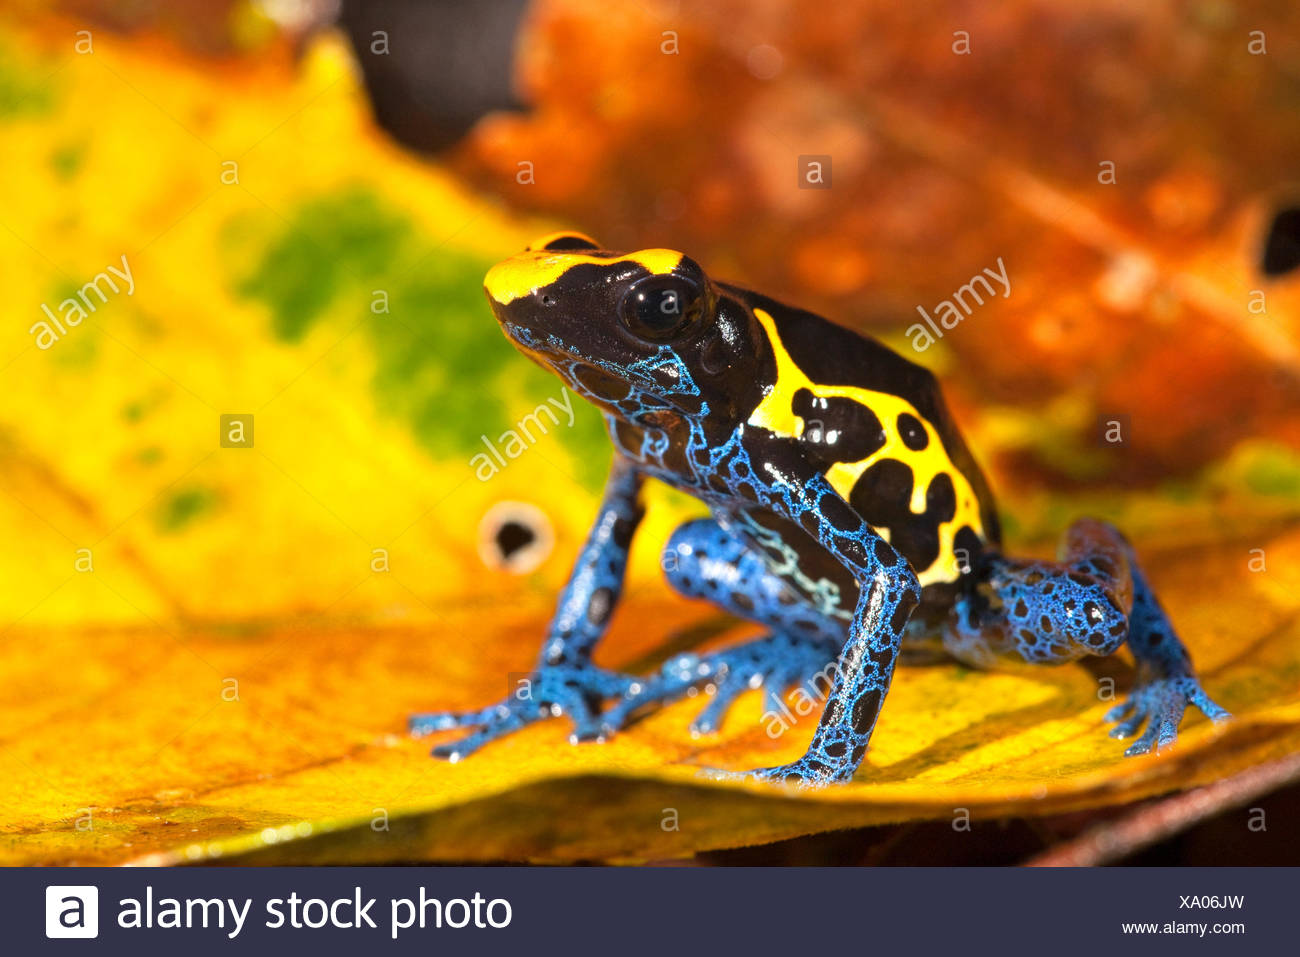 photo of the Dyeing dart frog on the forest floor between coloured leafs - Stock Image